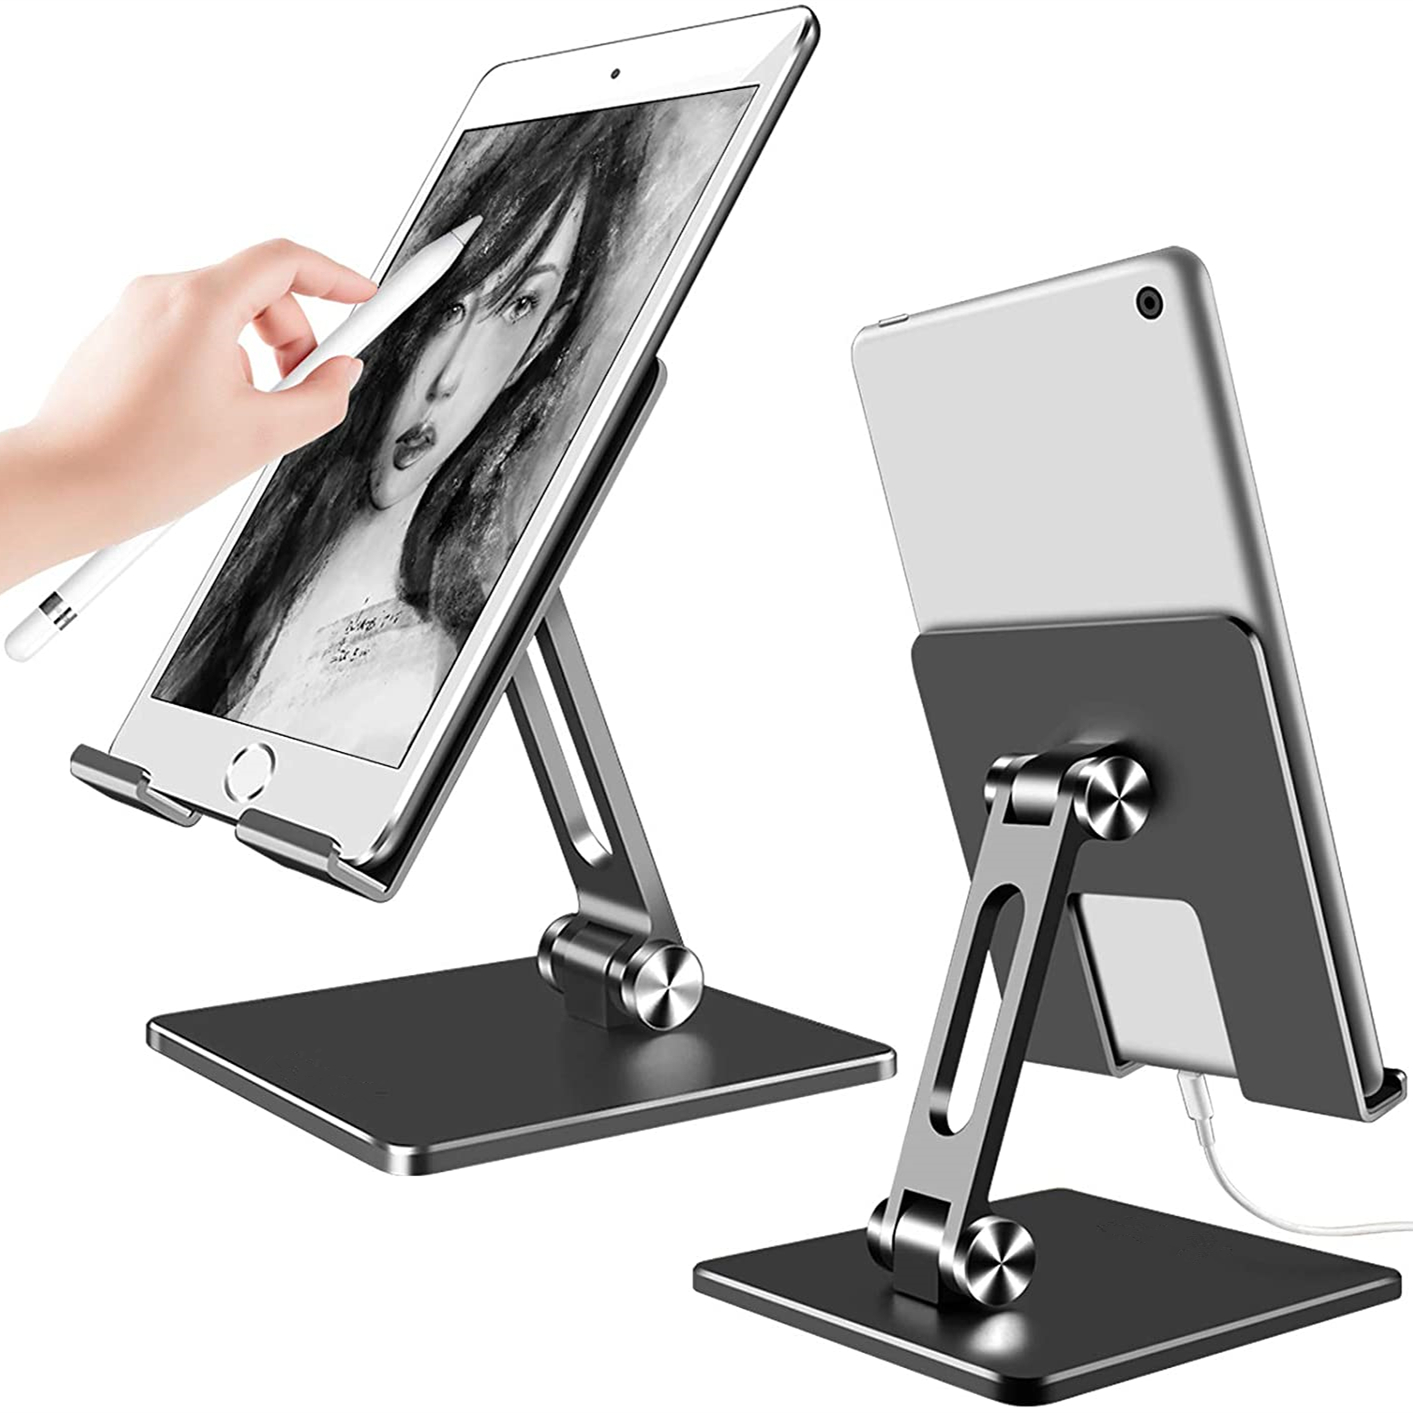 Foldable Aluminum Tablet Stand,Dual Height and Angle Adjustable Bracket for 4